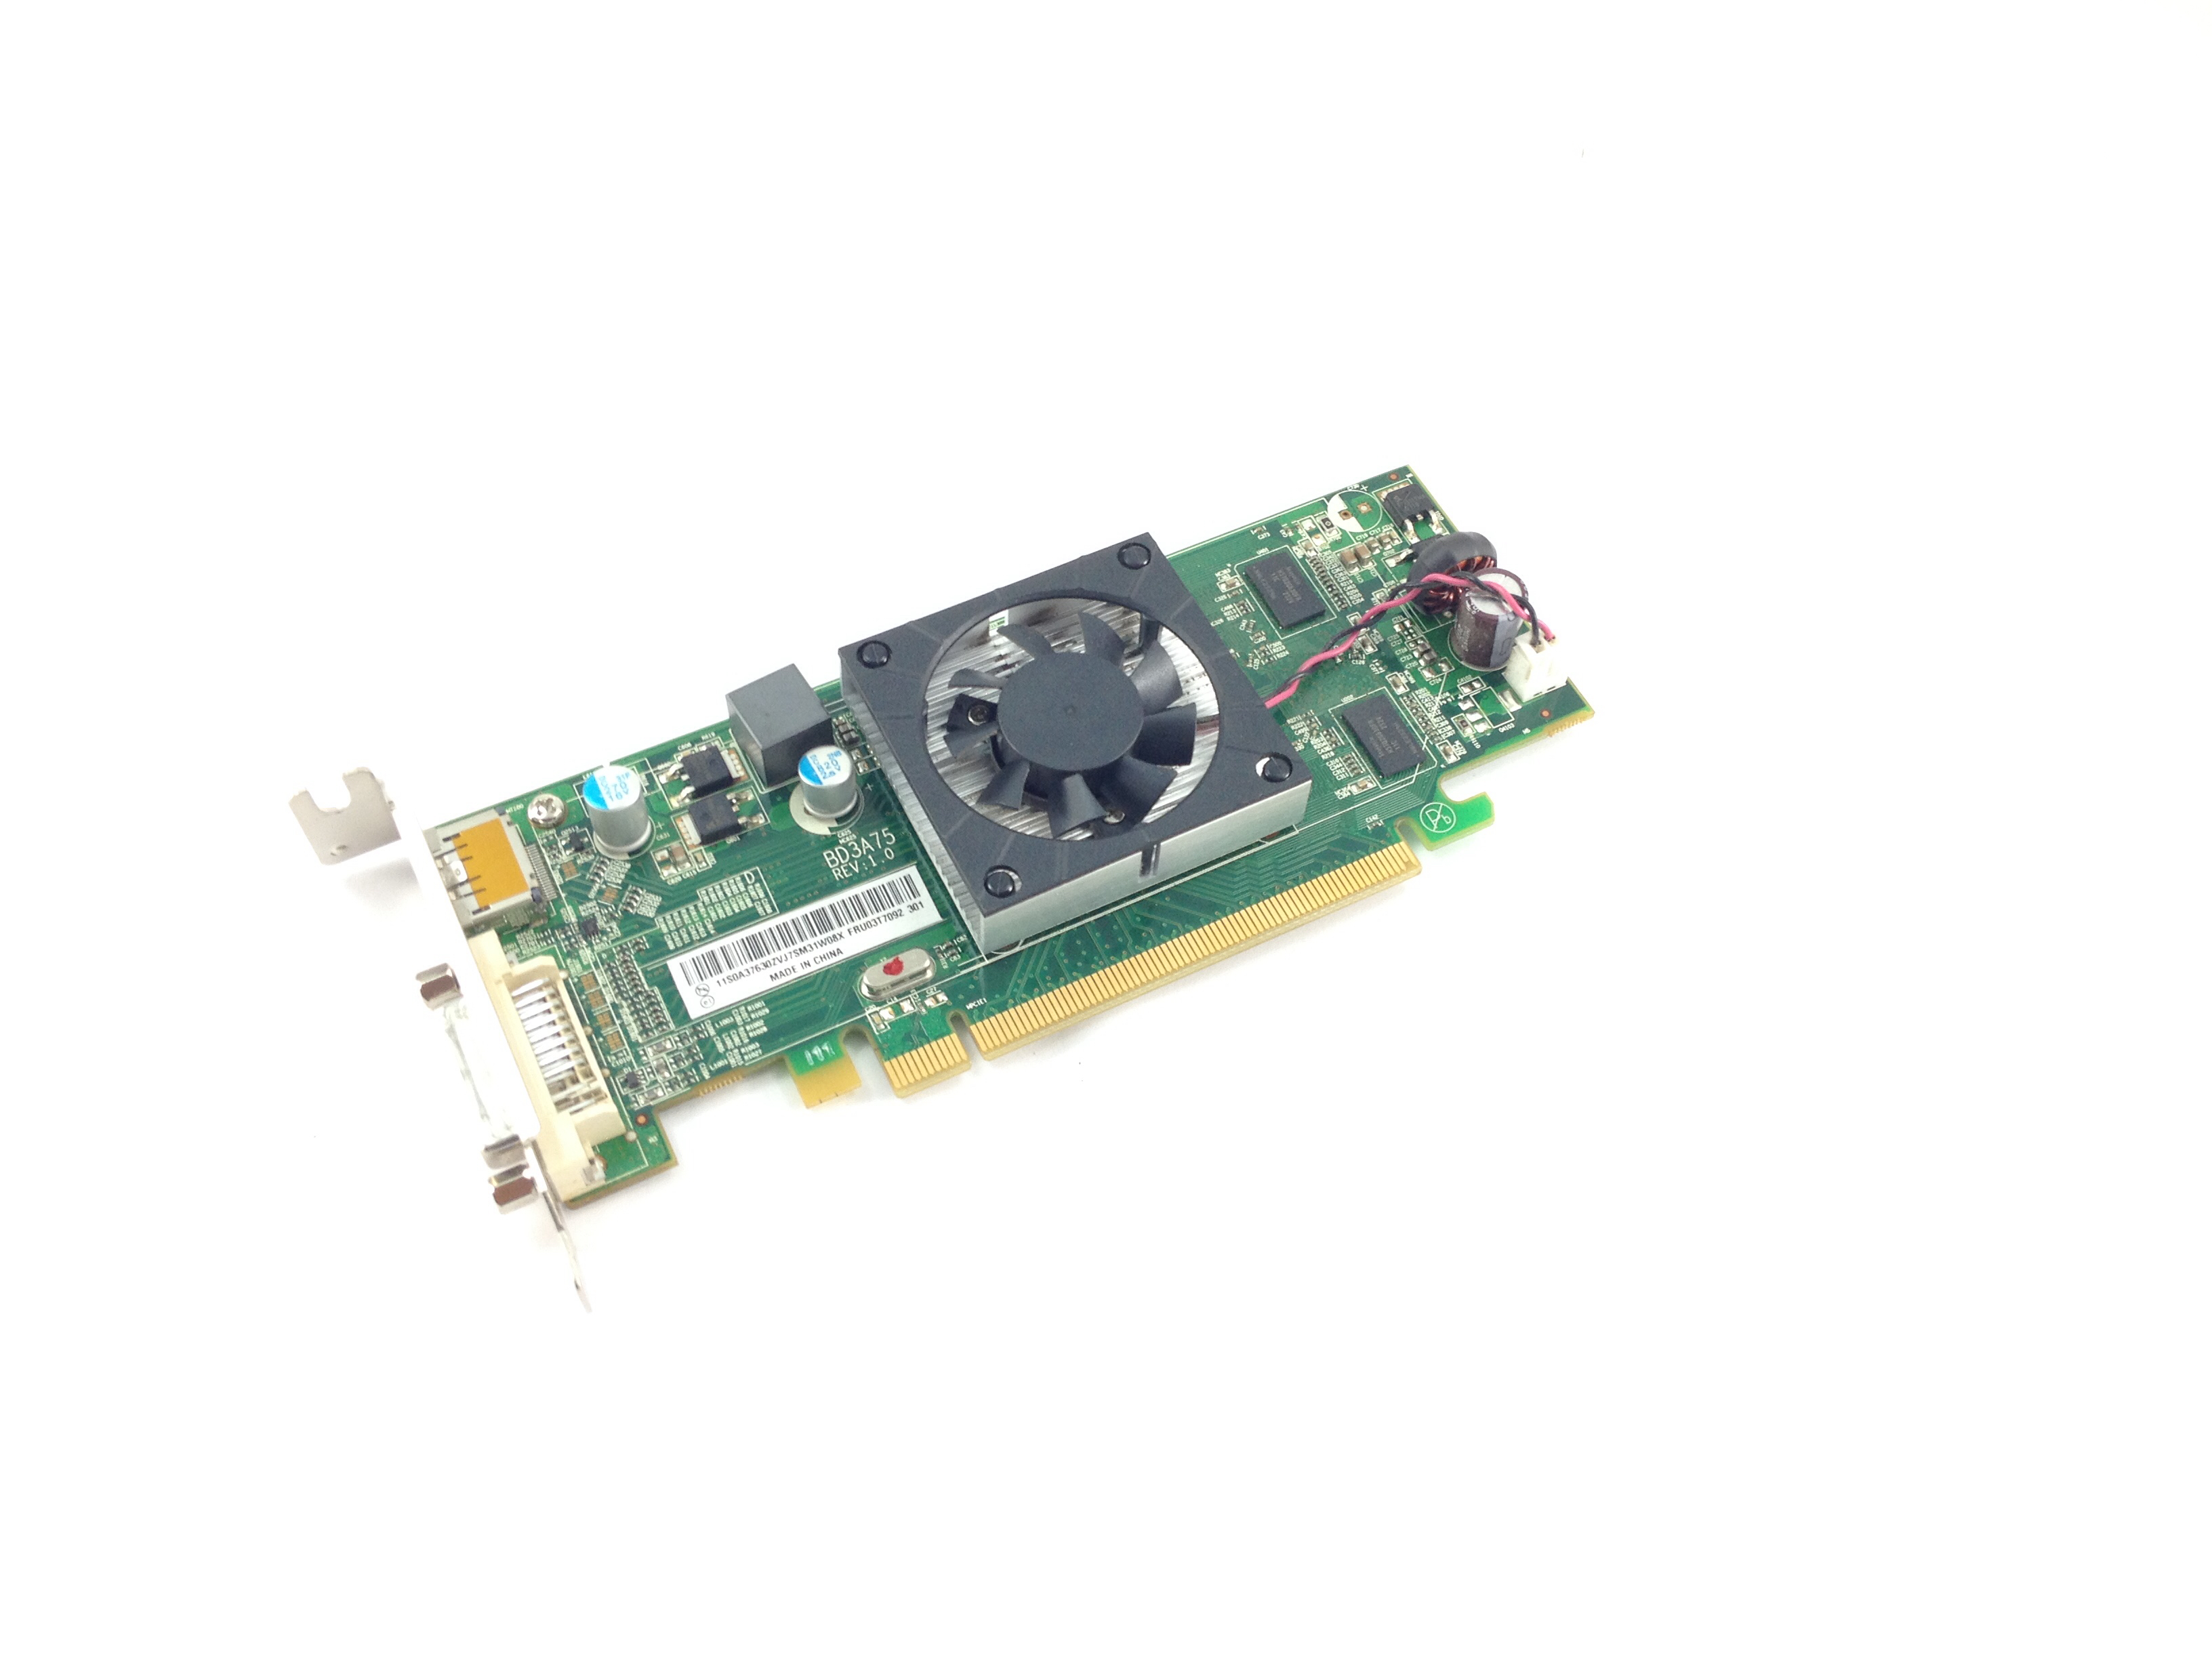 IBM Lenovo Thinkcenter AMD Radeon Hd7450 1GB Pci-E Graphics Card (HD7450 )